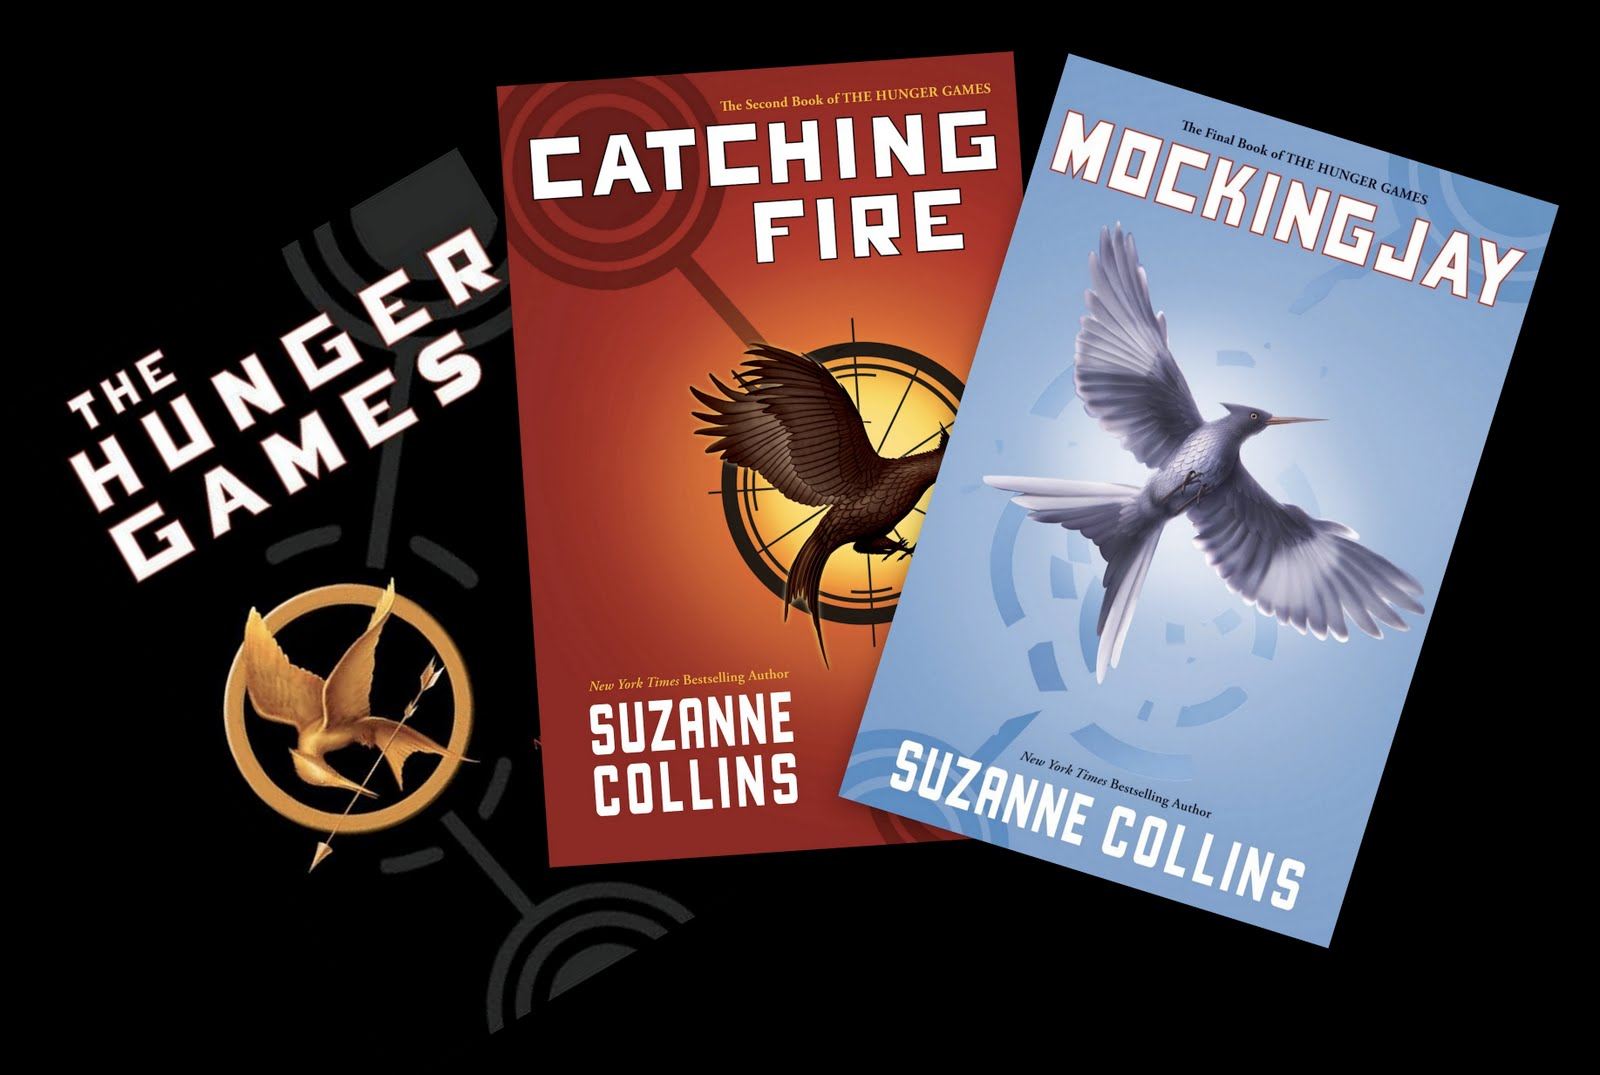 Suzanne Collins: Hunger Games author who found rich pickings in dystopia